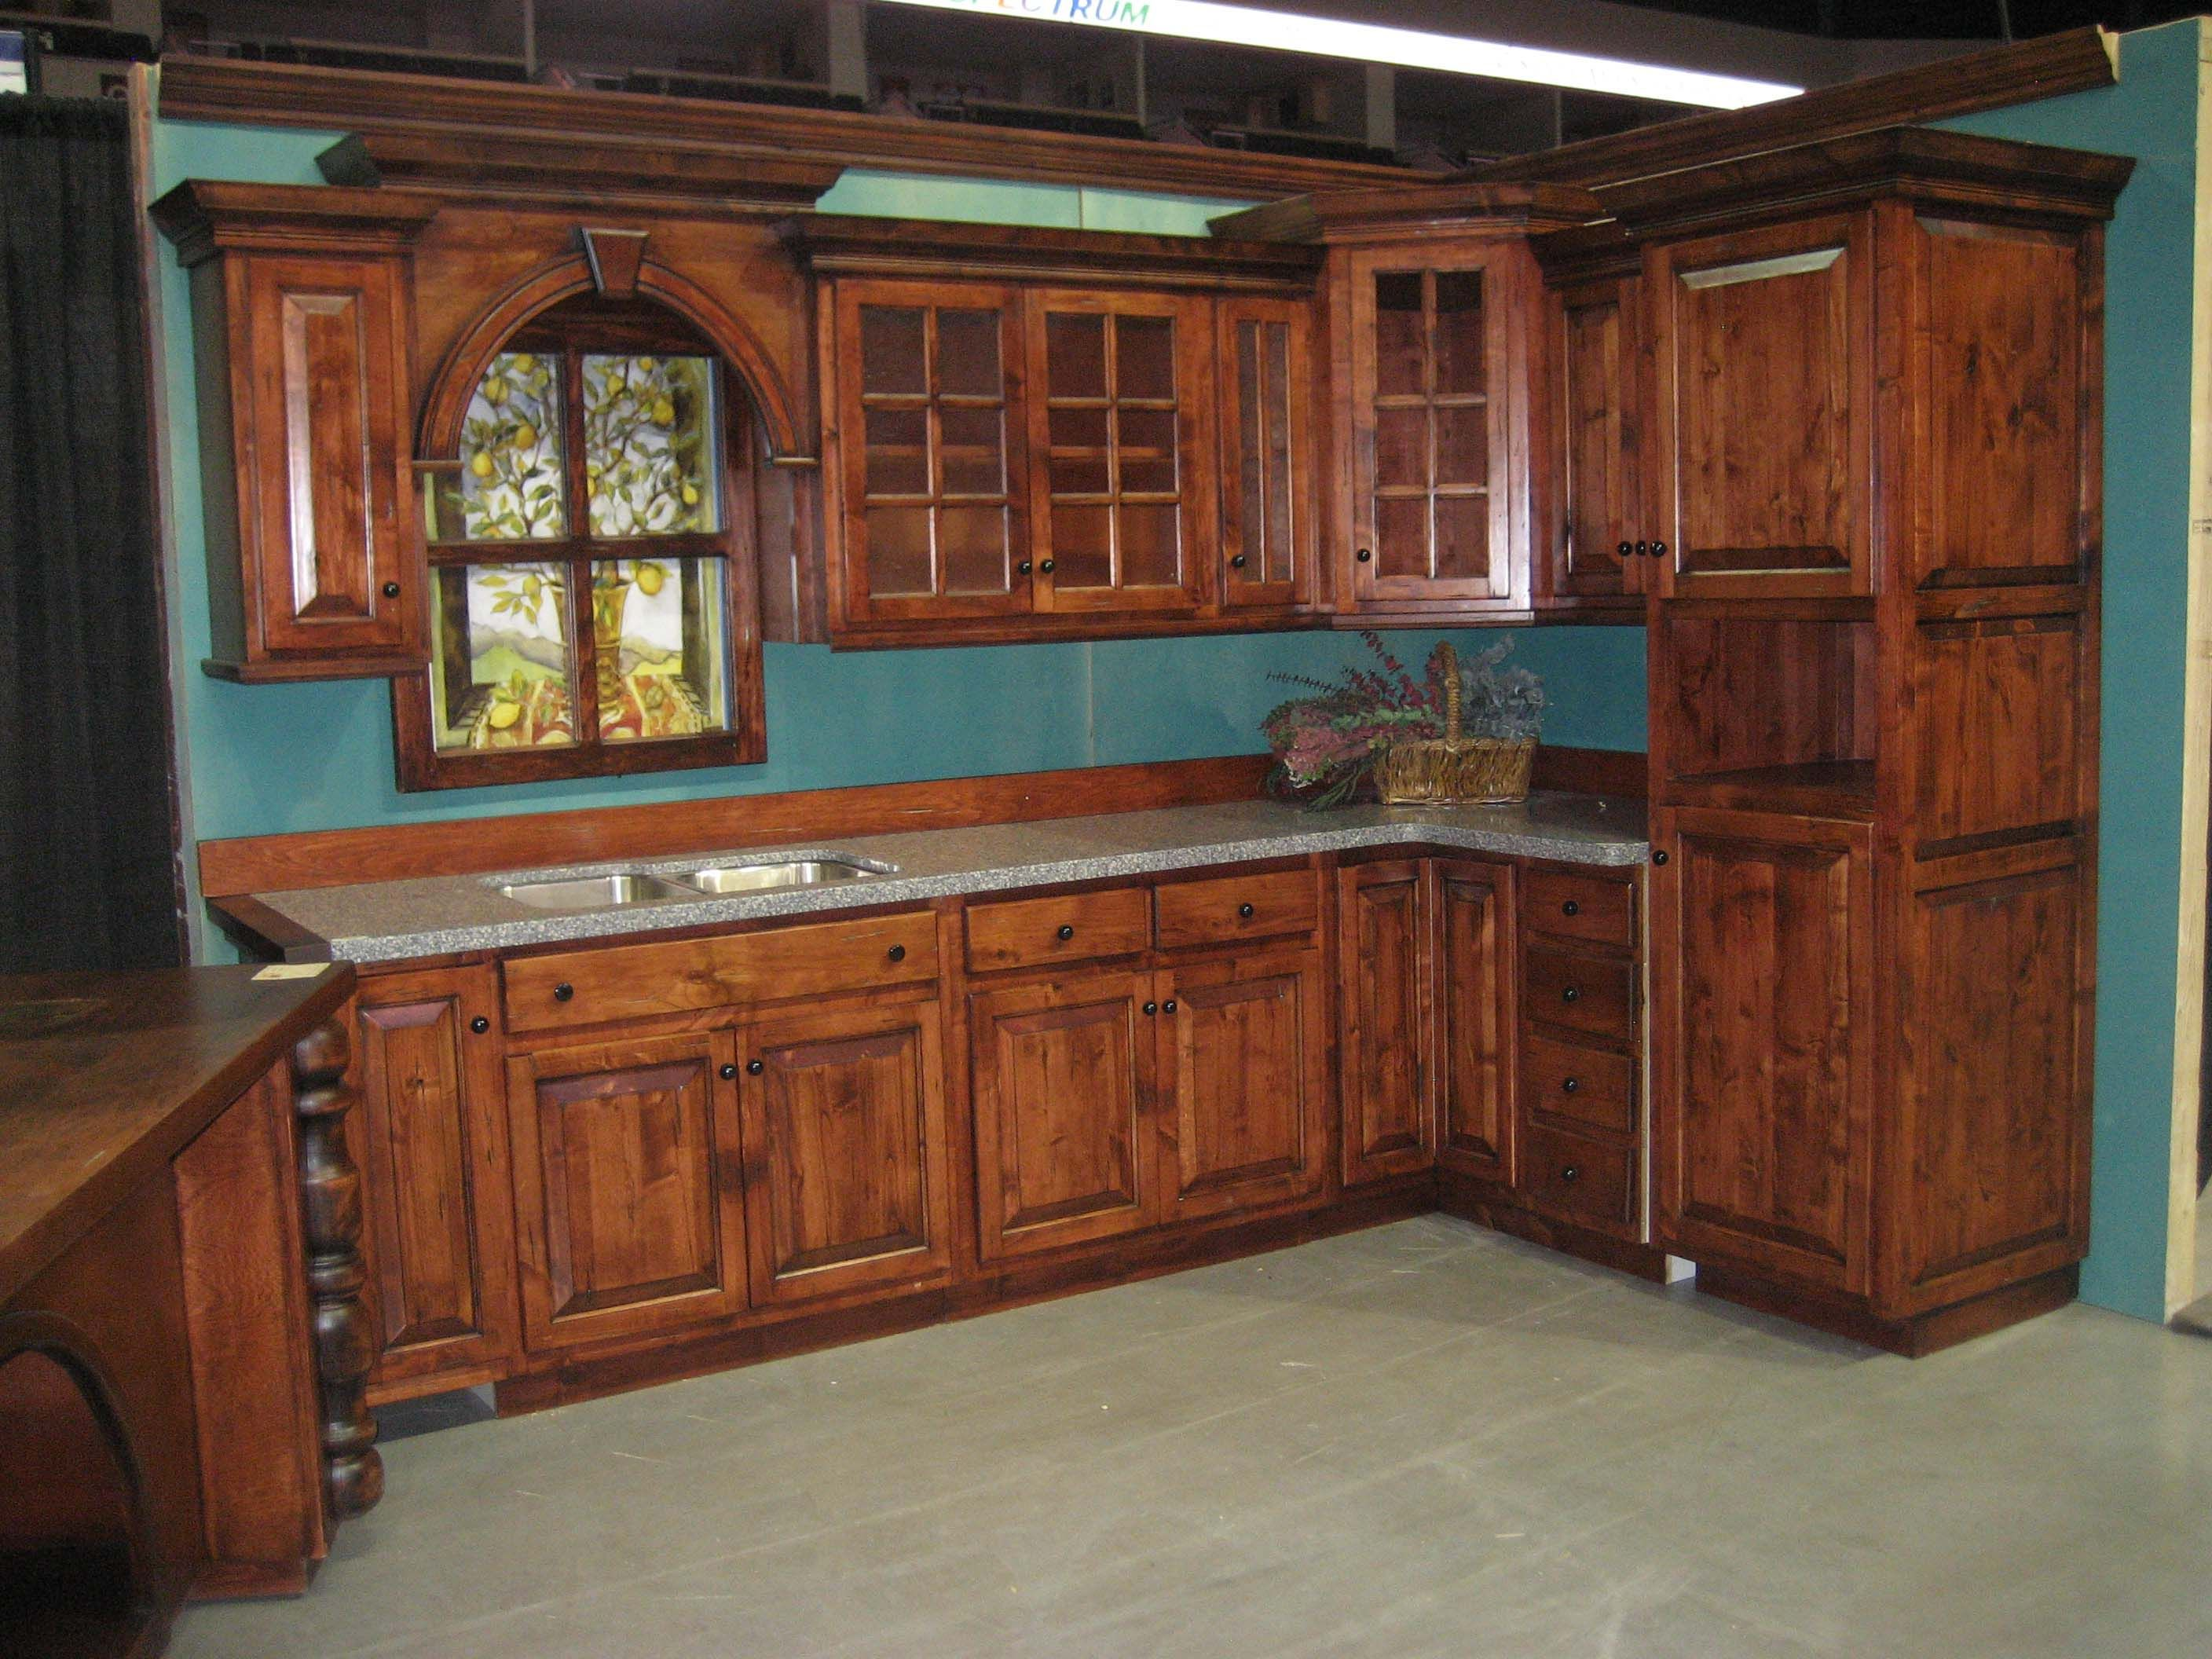 These cabinets are not